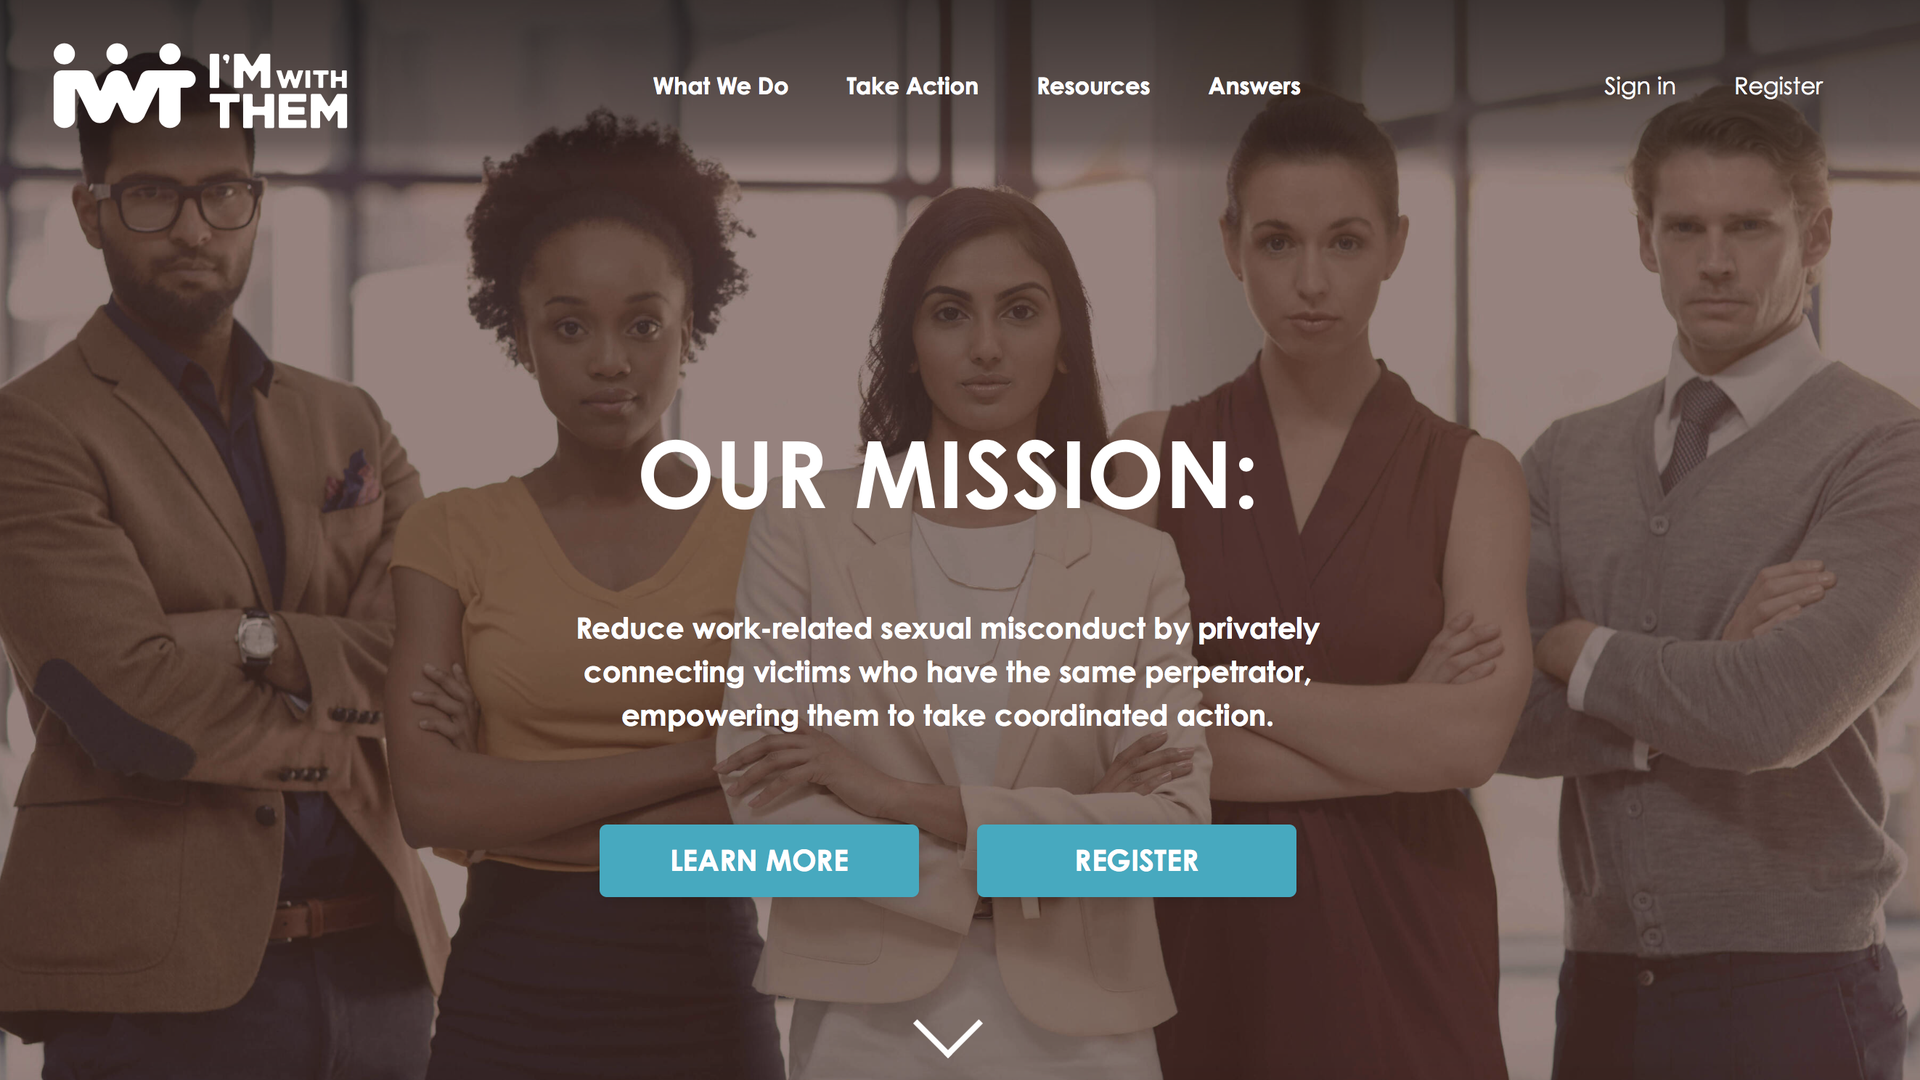 Homepage of Imwiththem.org